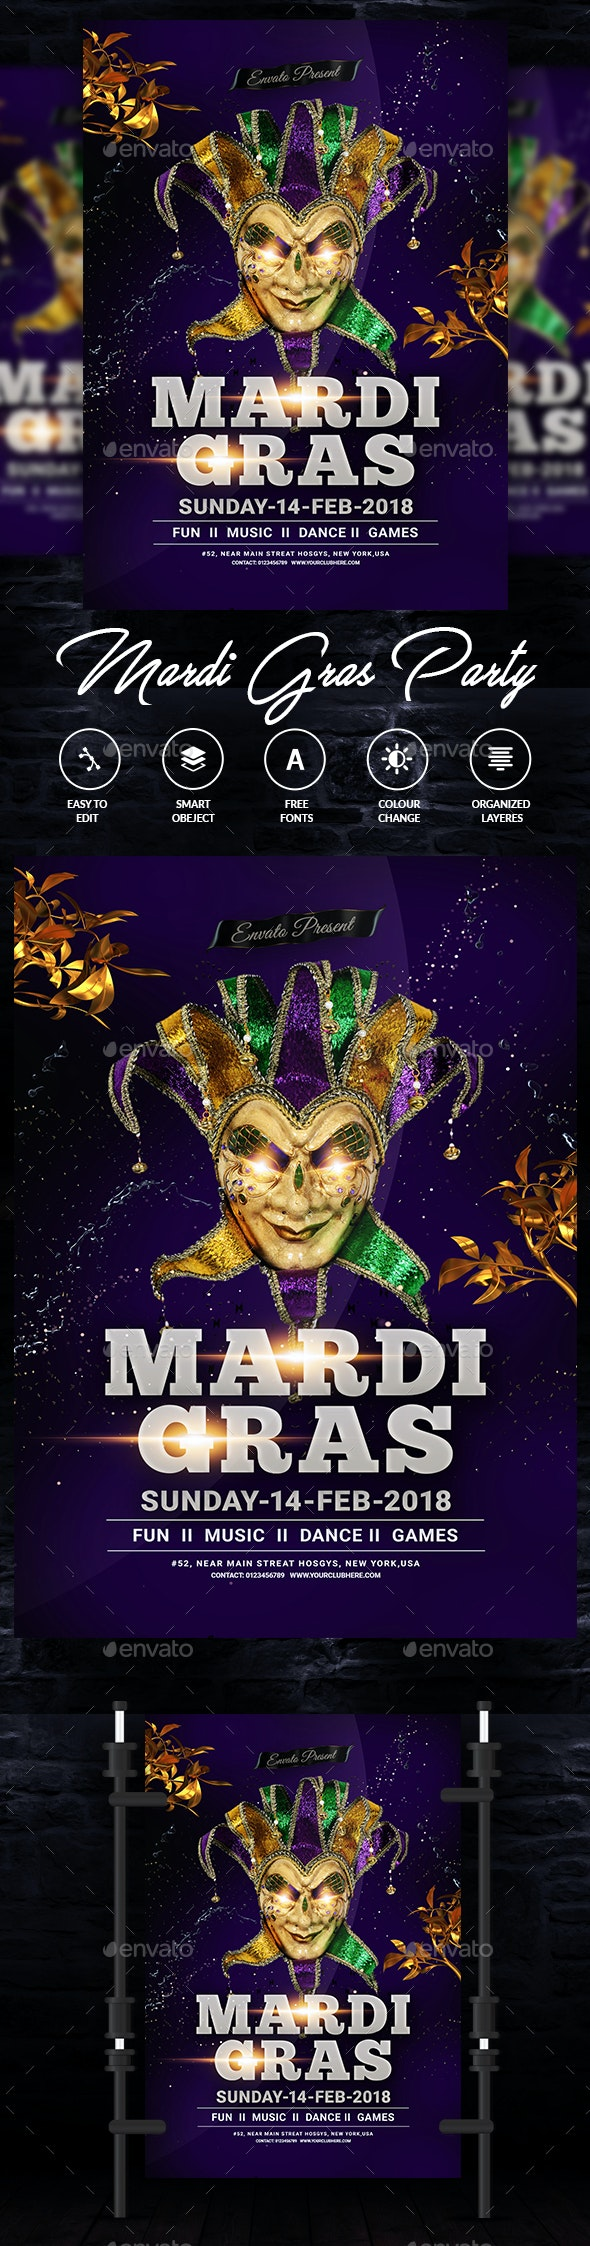 Mardi Grass Flyer Template - Events Flyers